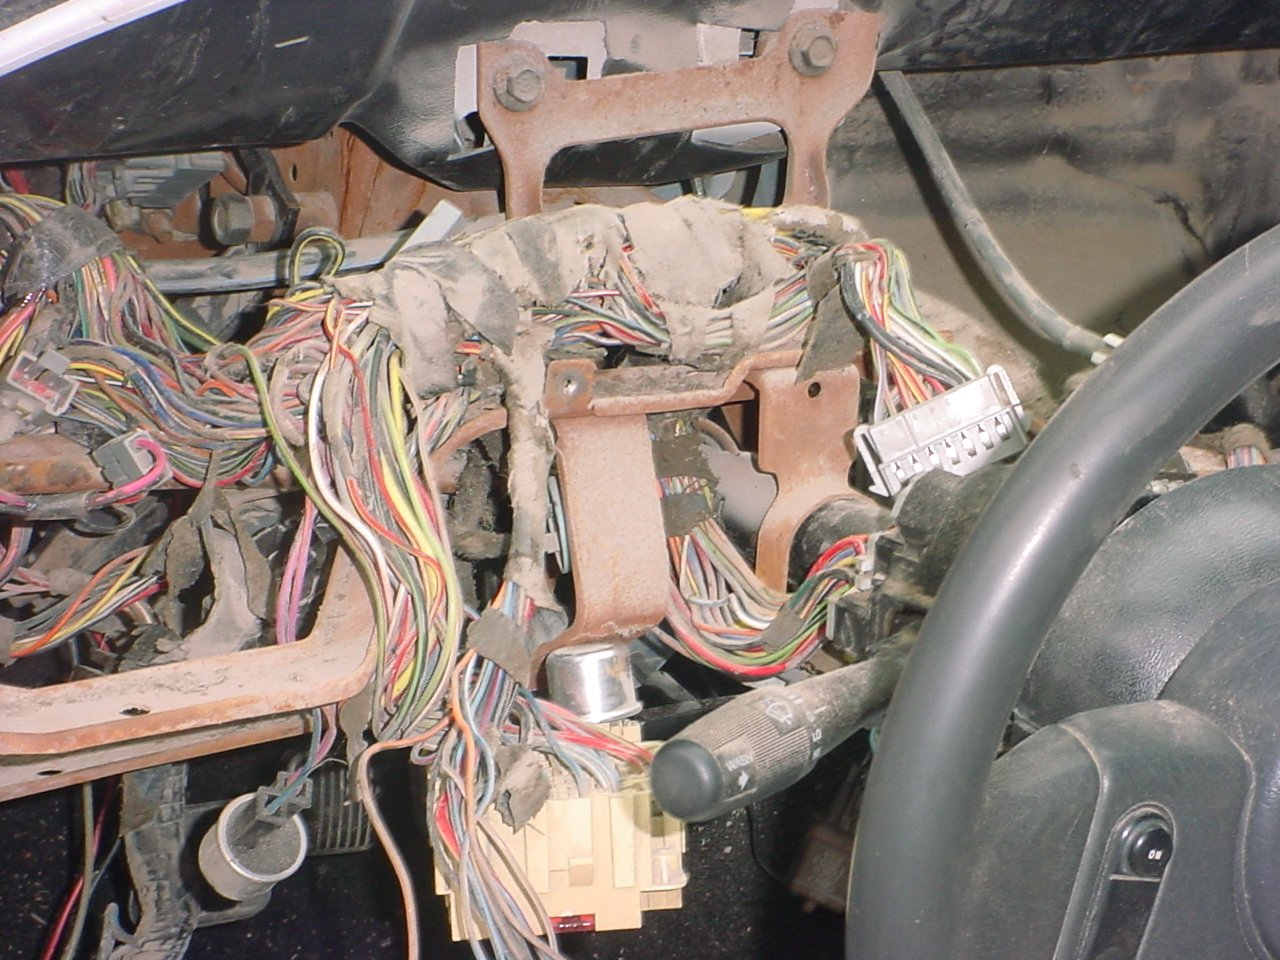 underdash wiring diagram ford mustang forum click image for larger version 01663 jpg views 19242 size 579 1